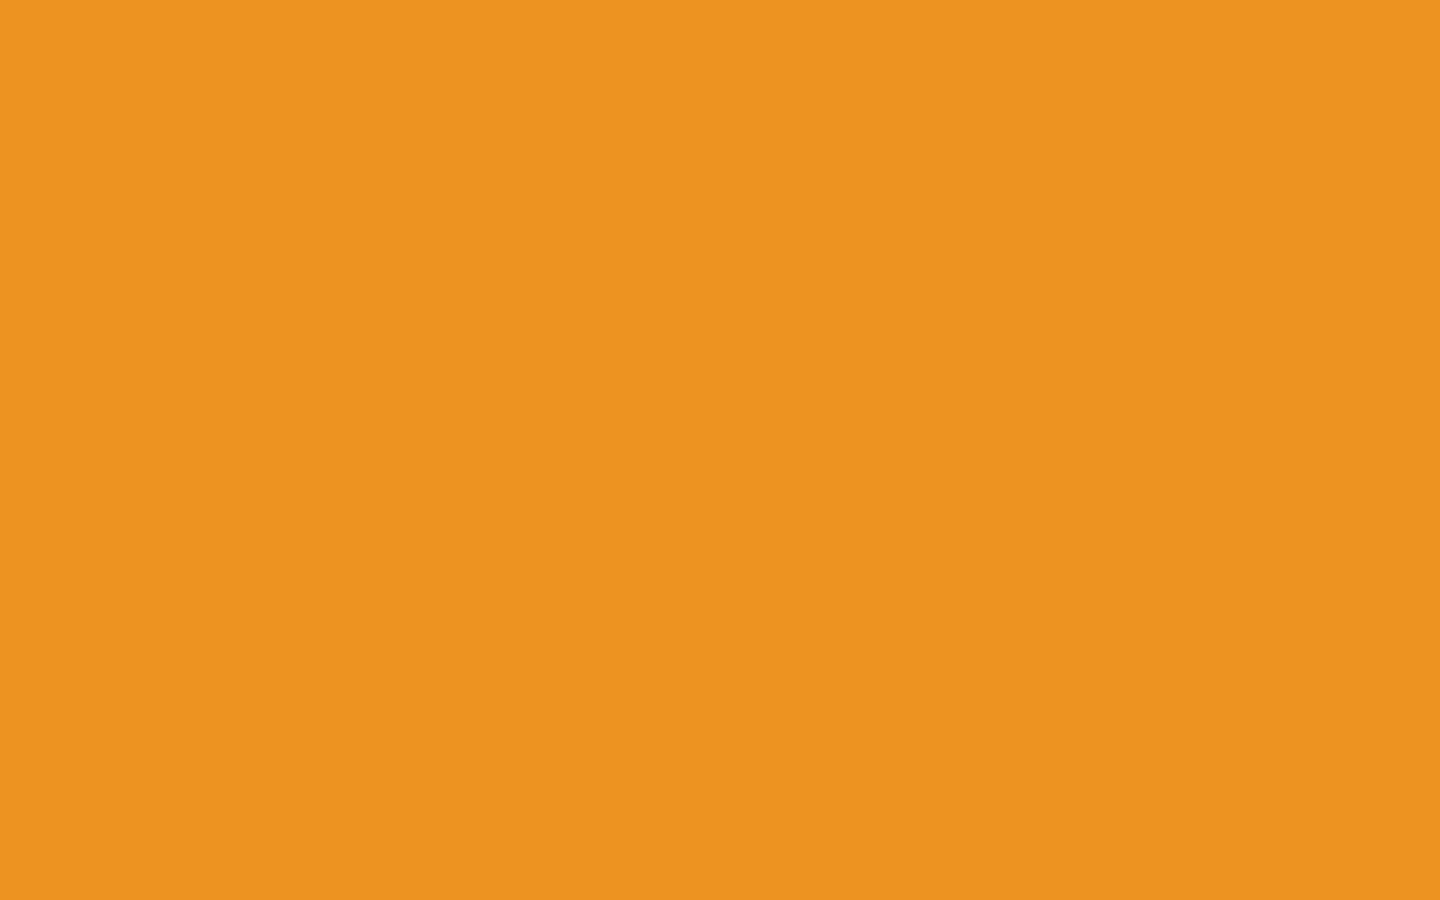 1440x900 Carrot Orange Solid Color Background